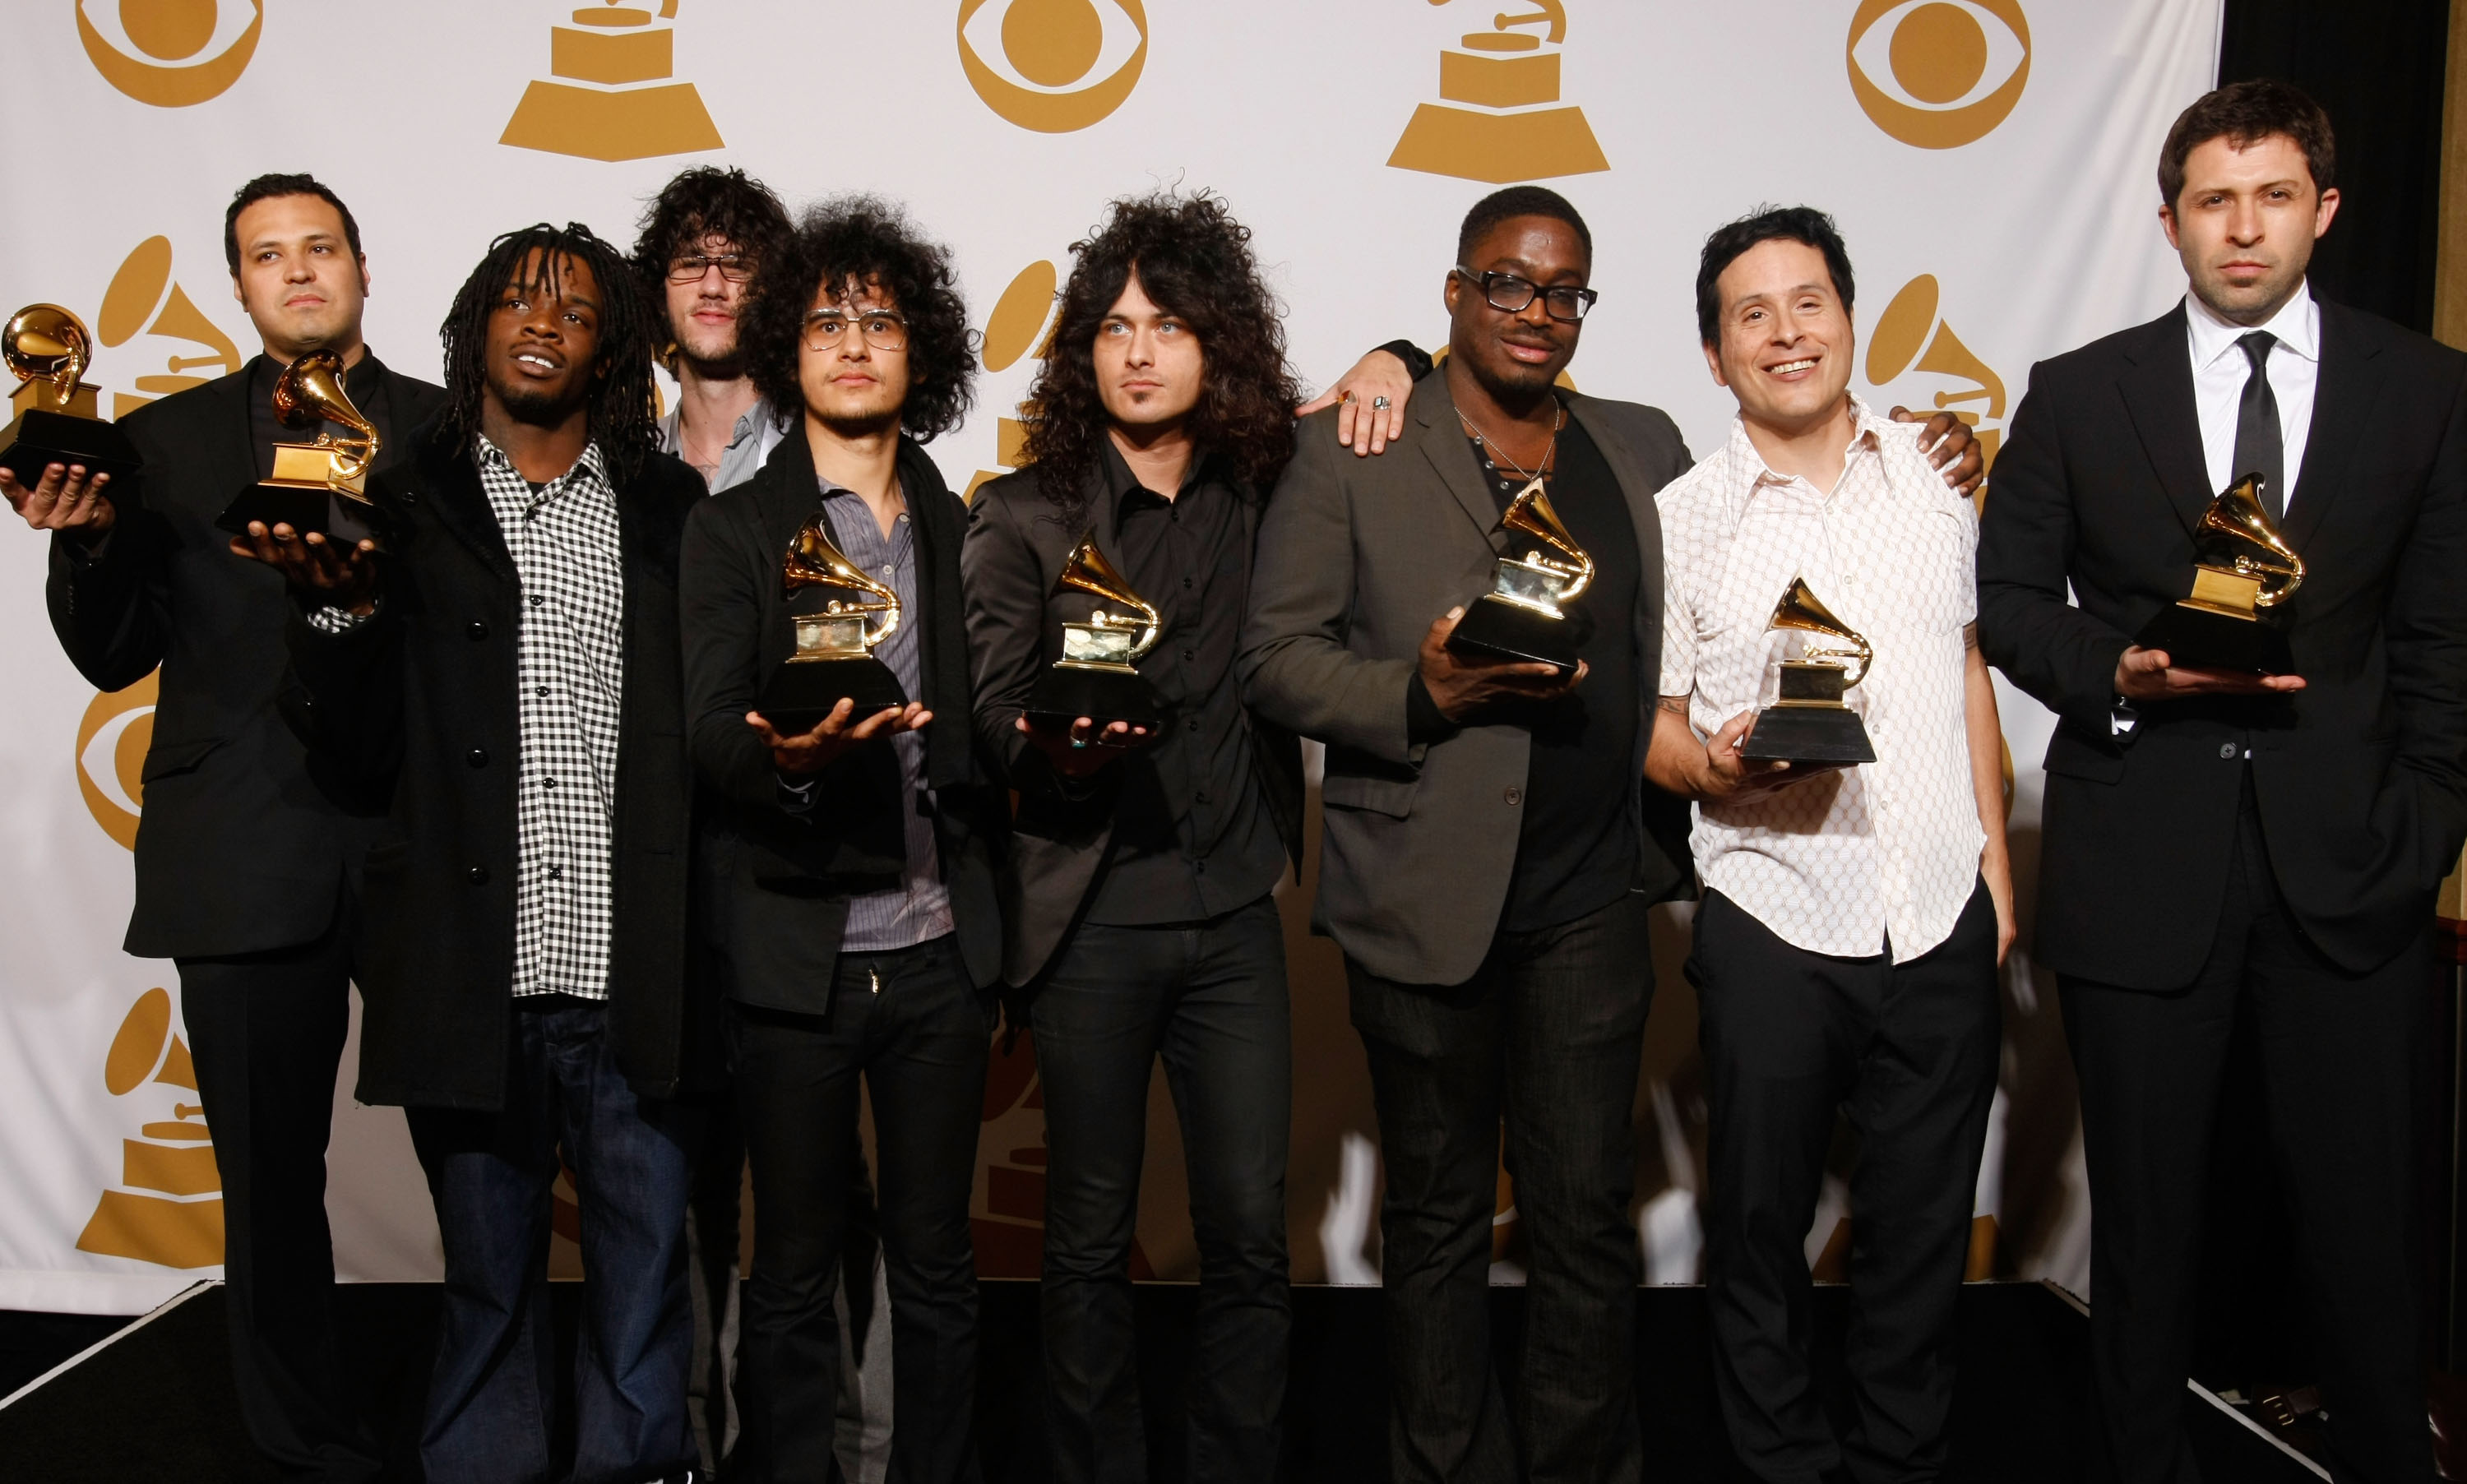 Image result for the mars volta band grammy award